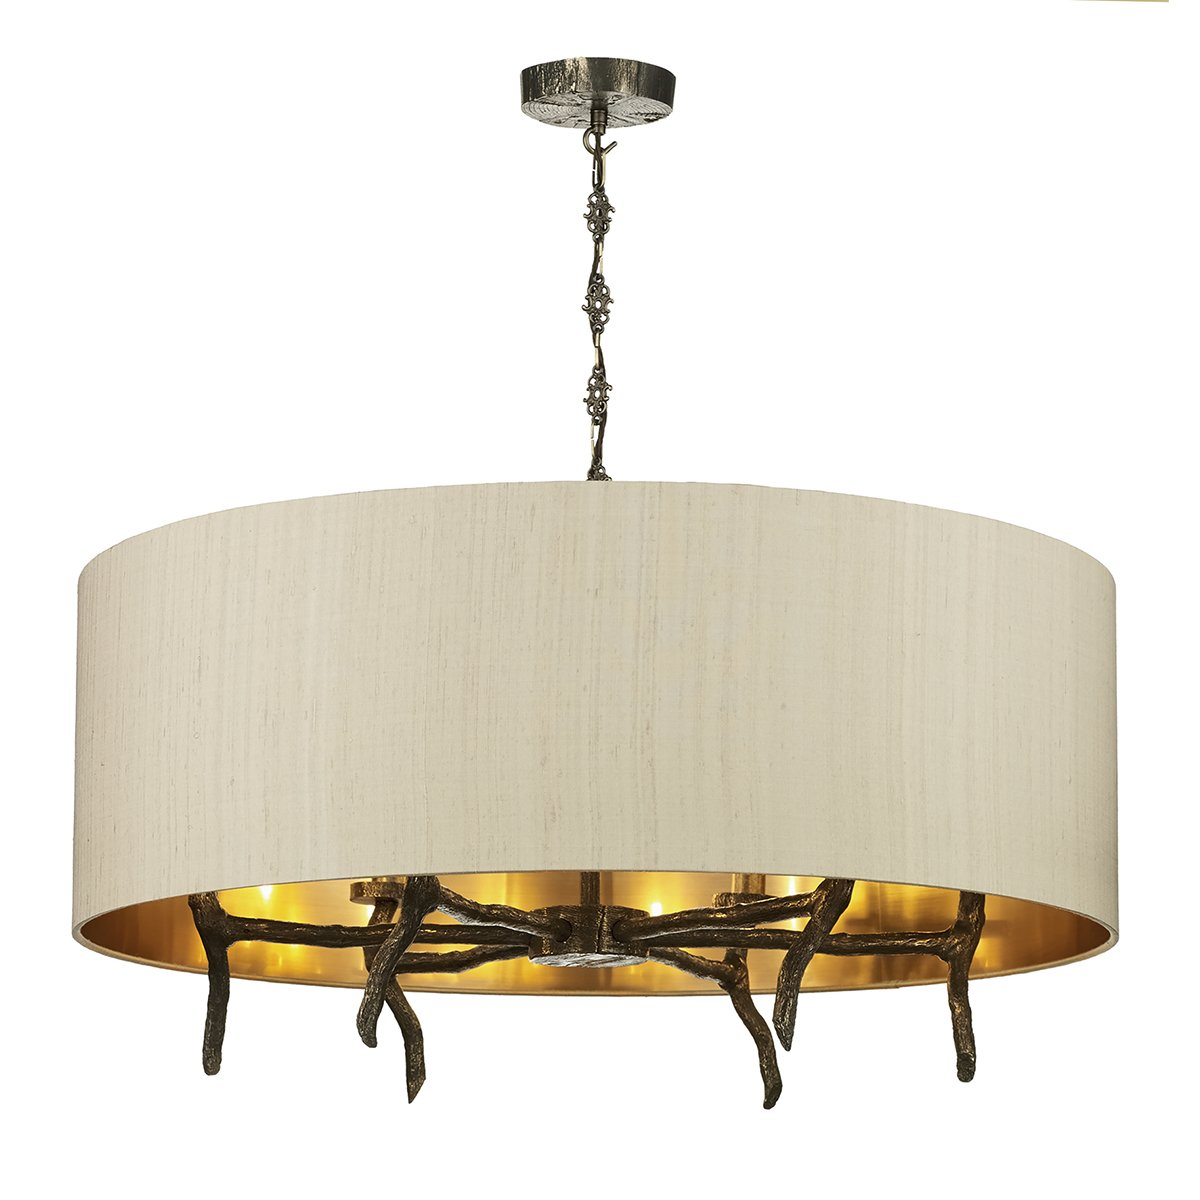 David Hunt Lighting JOS0601 Joshua 6 Light Pendant in Bronze complete with Shade